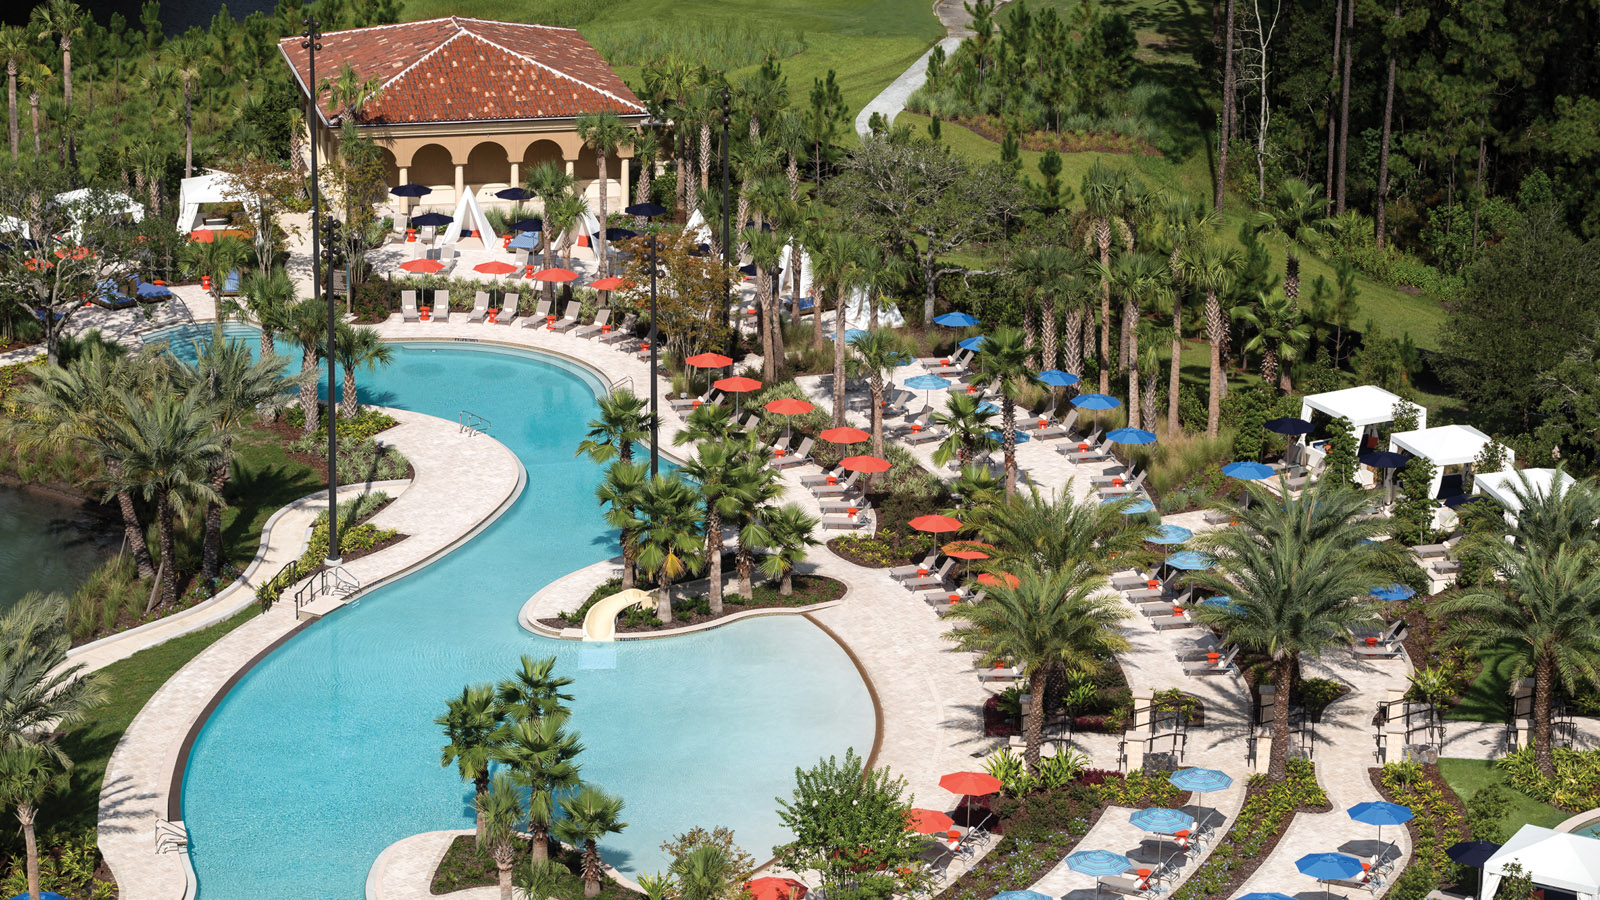 Experience Spring Break Fun in the Sun at Four Seasons Resort Orlando at Walt Disney World Resort